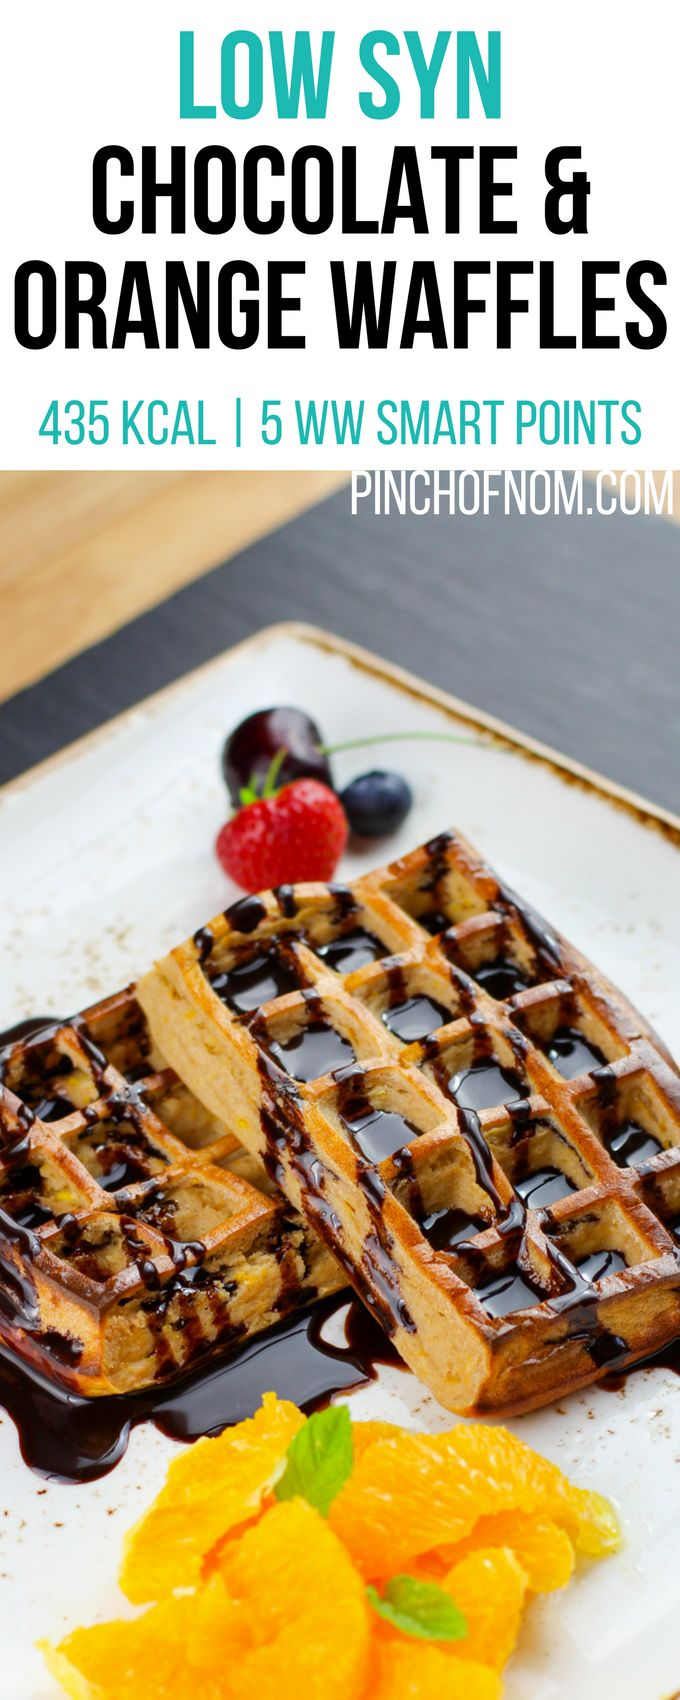 Low Syn Chocolate & Orange Waffles | Pinch Of Nom Slimming World Recipes    435 kcal | 1 Syn | 5 Weight Watchers Smart Points